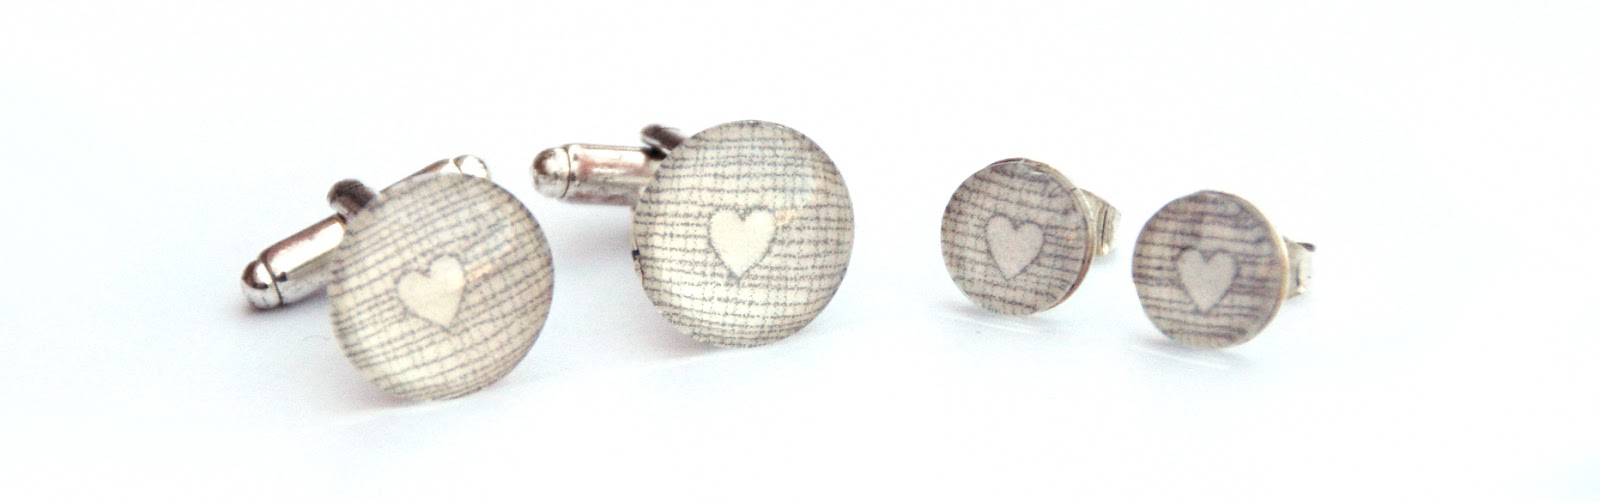 https://www.etsy.com/uk/listing/178909220/his-hers-grey-heart-cufflinks-and